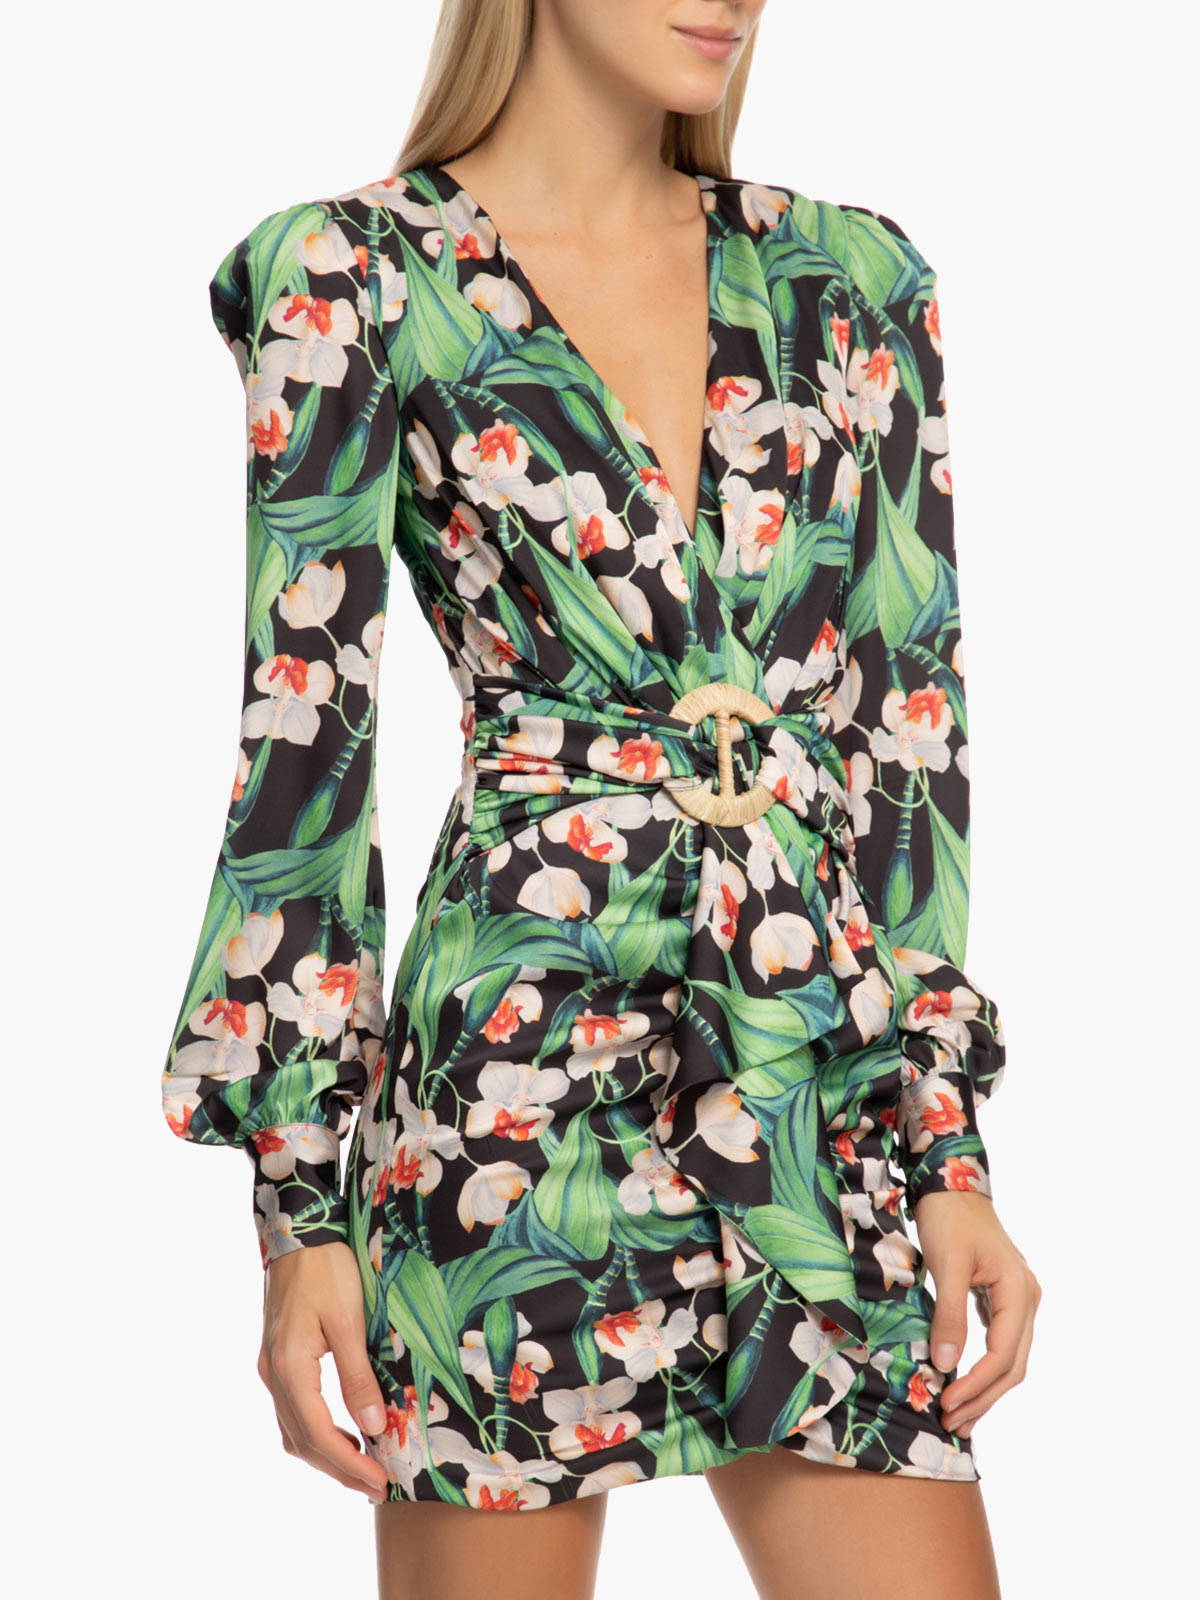 Floral Long Sleeve Belted Mini Dress | Black Floral Long Sleeve Belted Mini Dress | Black